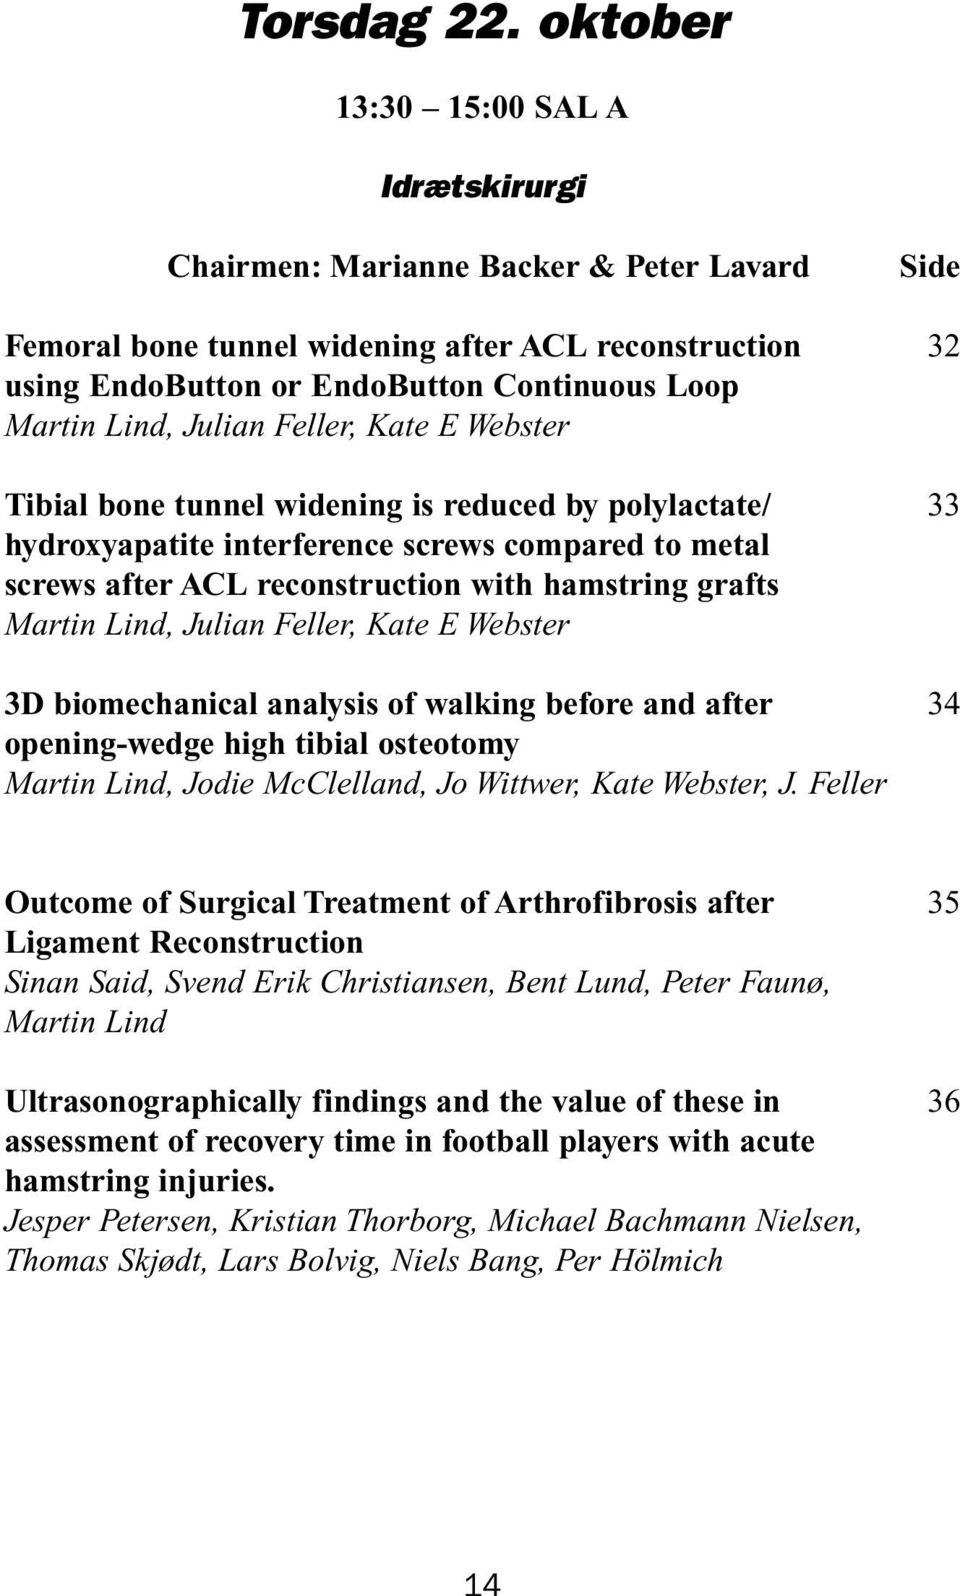 Lind, Julian Feller, Kate E Webster Tibial bone tunnel widening is reduced by polylactate/ 33 hydroxyapatite interference screws compared to metal screws after ACL reconstruction with hamstring